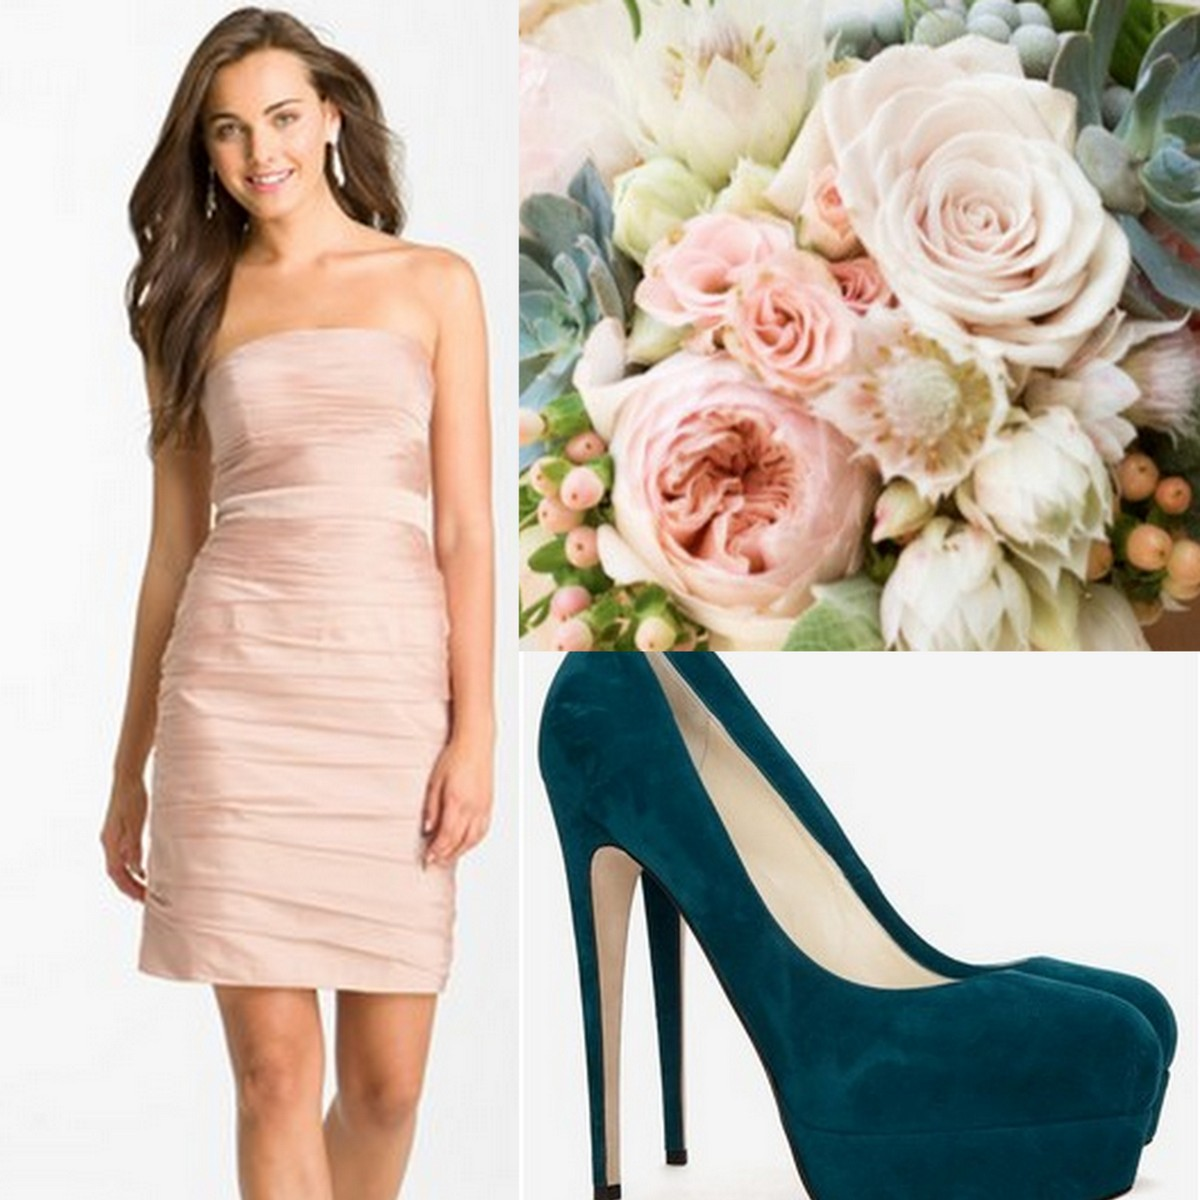 Monique Lhuillier Bridesmaid Dress, Brian Atwood Teal Pumps